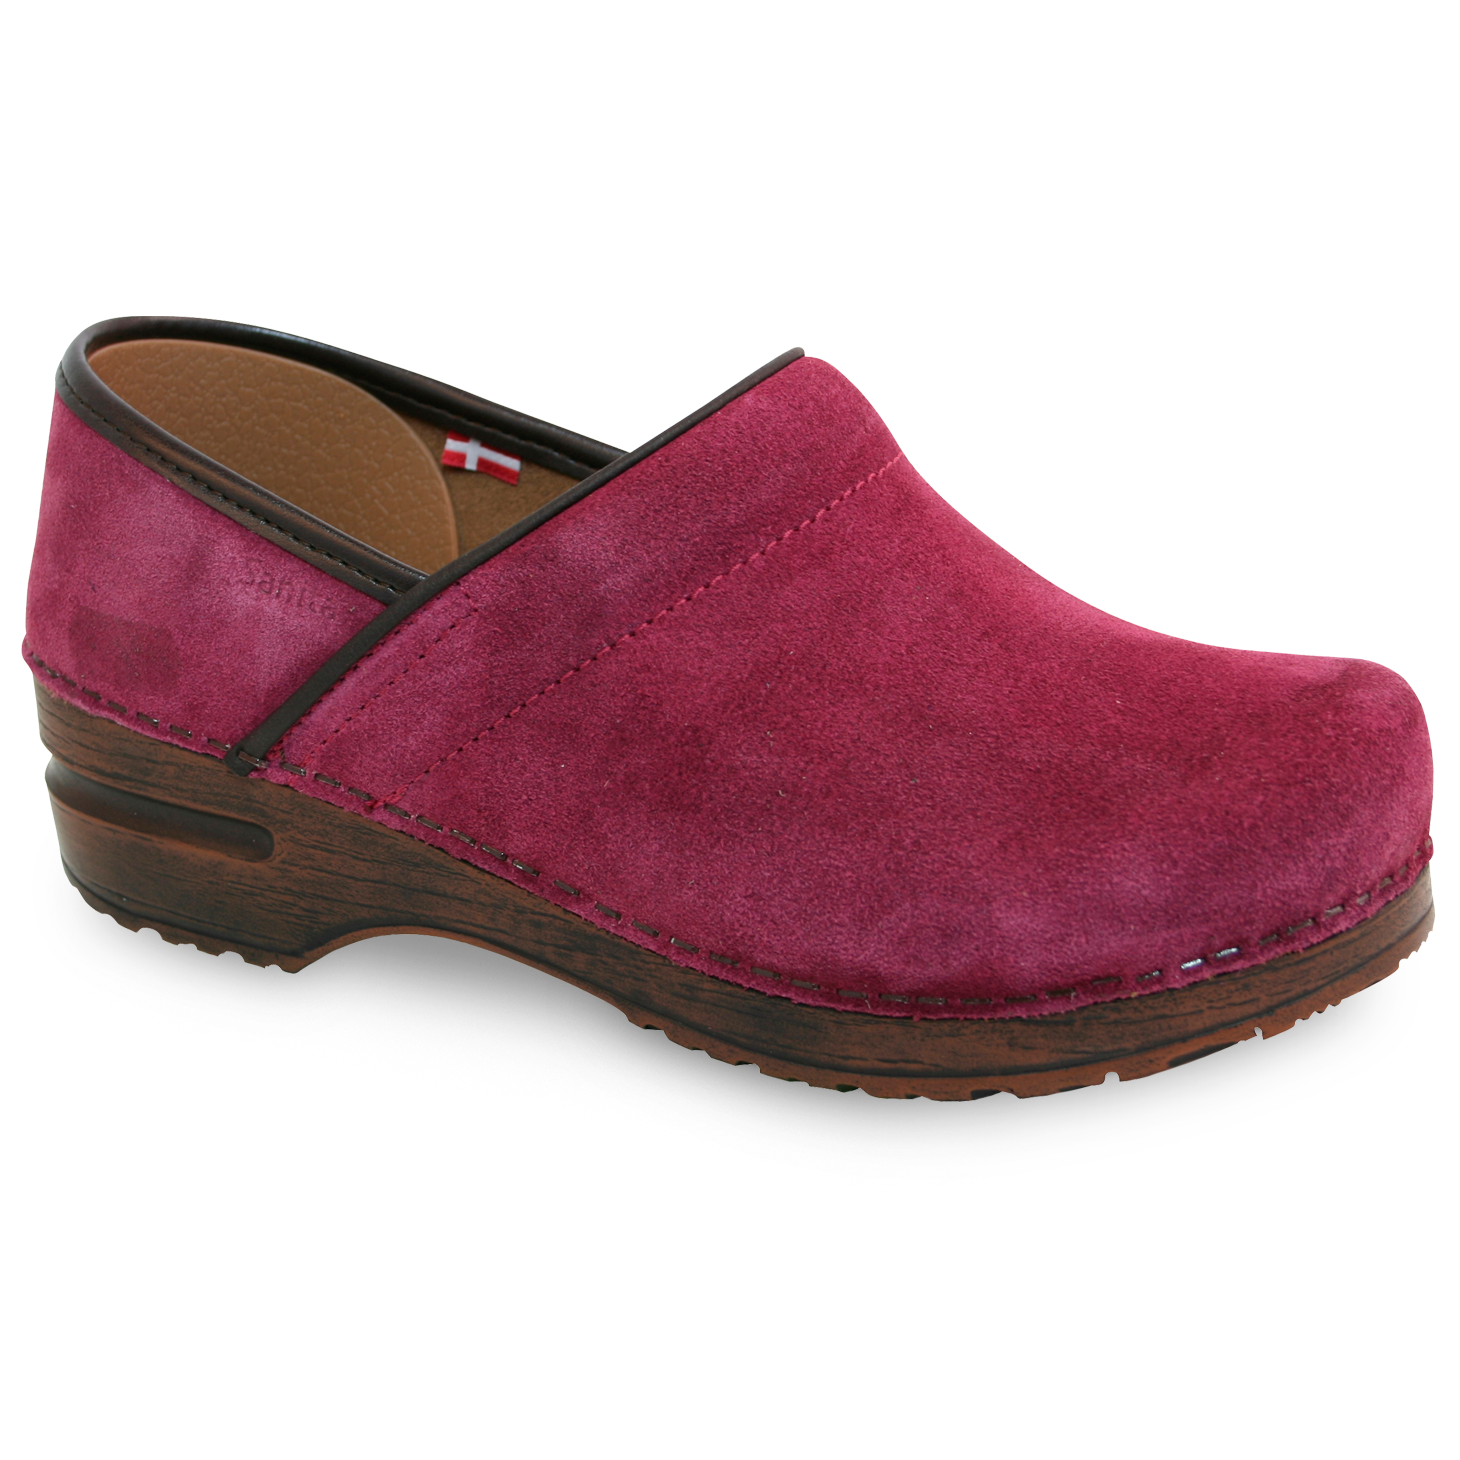 Sanita Nina Women's in Raspberry Closed Back Clog